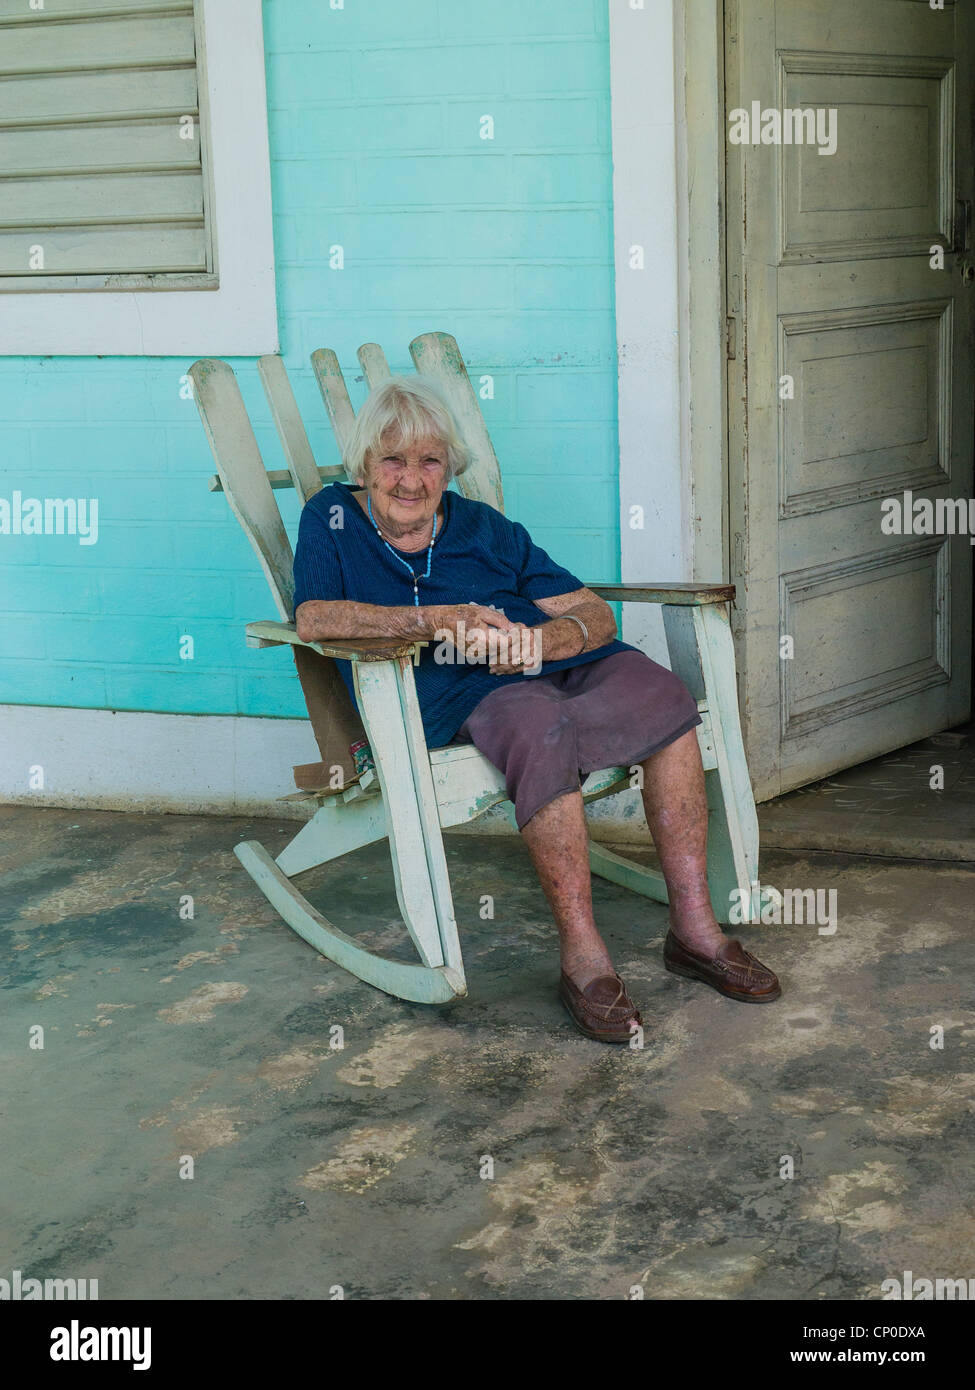 A 70-80 year old Cuban Hispanic woman with gray hair sits on her rocking  sc 1 st  Alamy & Old Woman Rocking Chair Stock Photos u0026 Old Woman Rocking Chair Stock ...